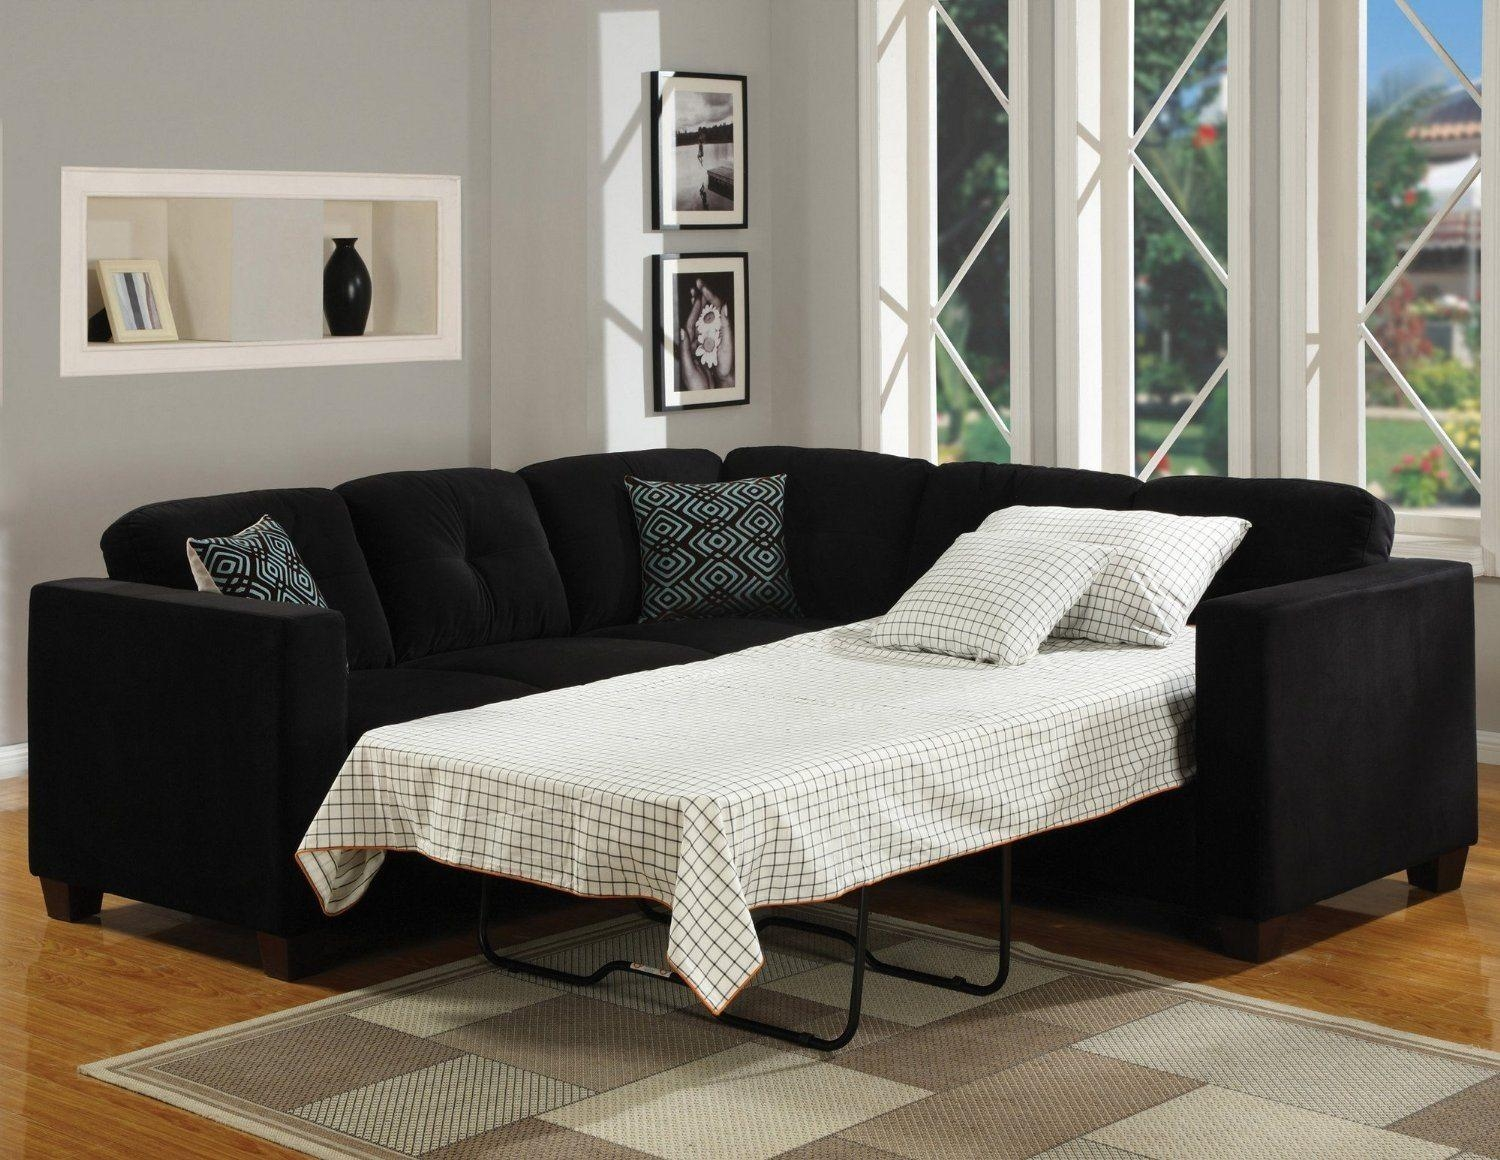 Bedroom: Exquisite Amour Sectional Couch With Pull Out Bed For Pertaining To Sleeper Sectional Sofas (Image 2 of 20)